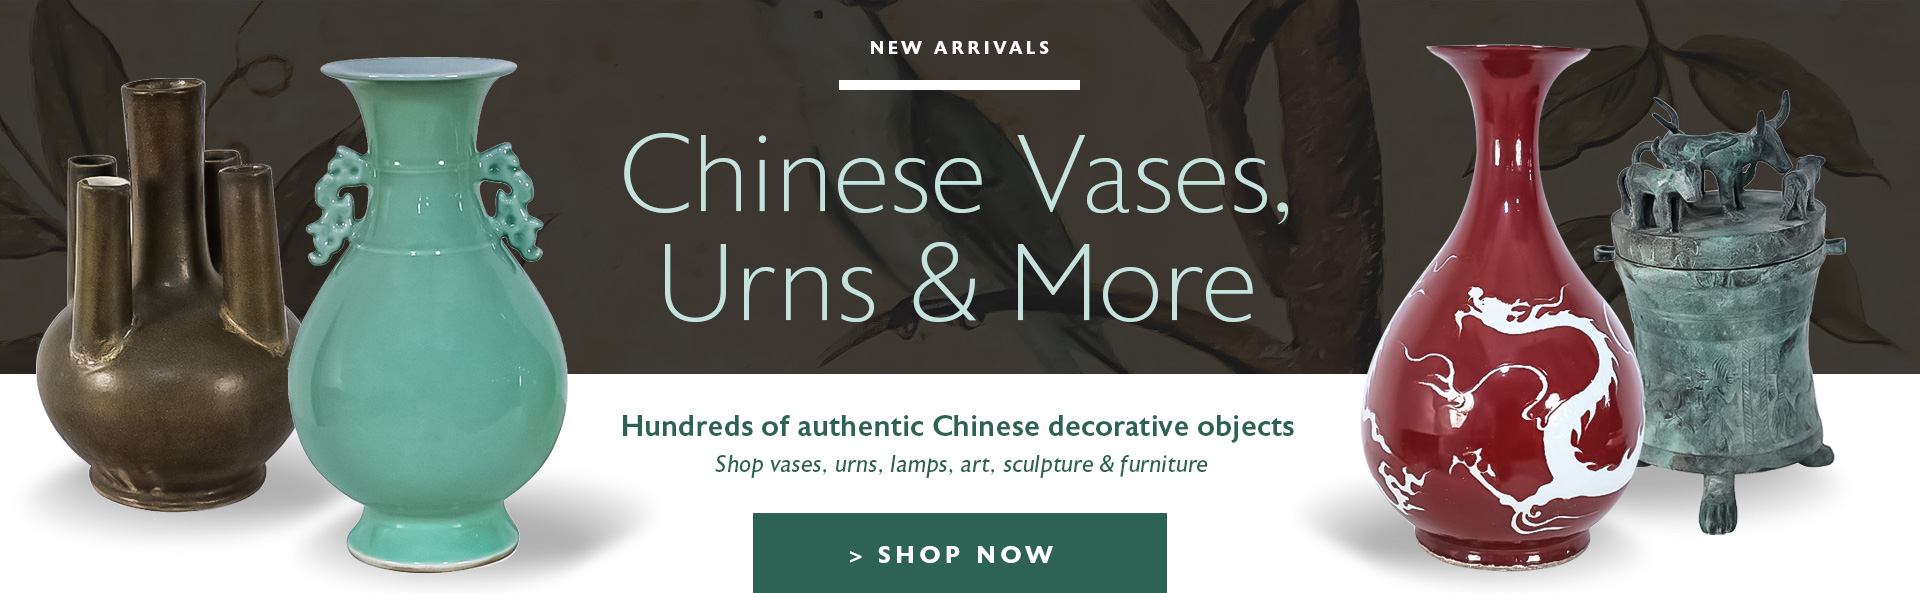 Chinese Vases, Urns & More